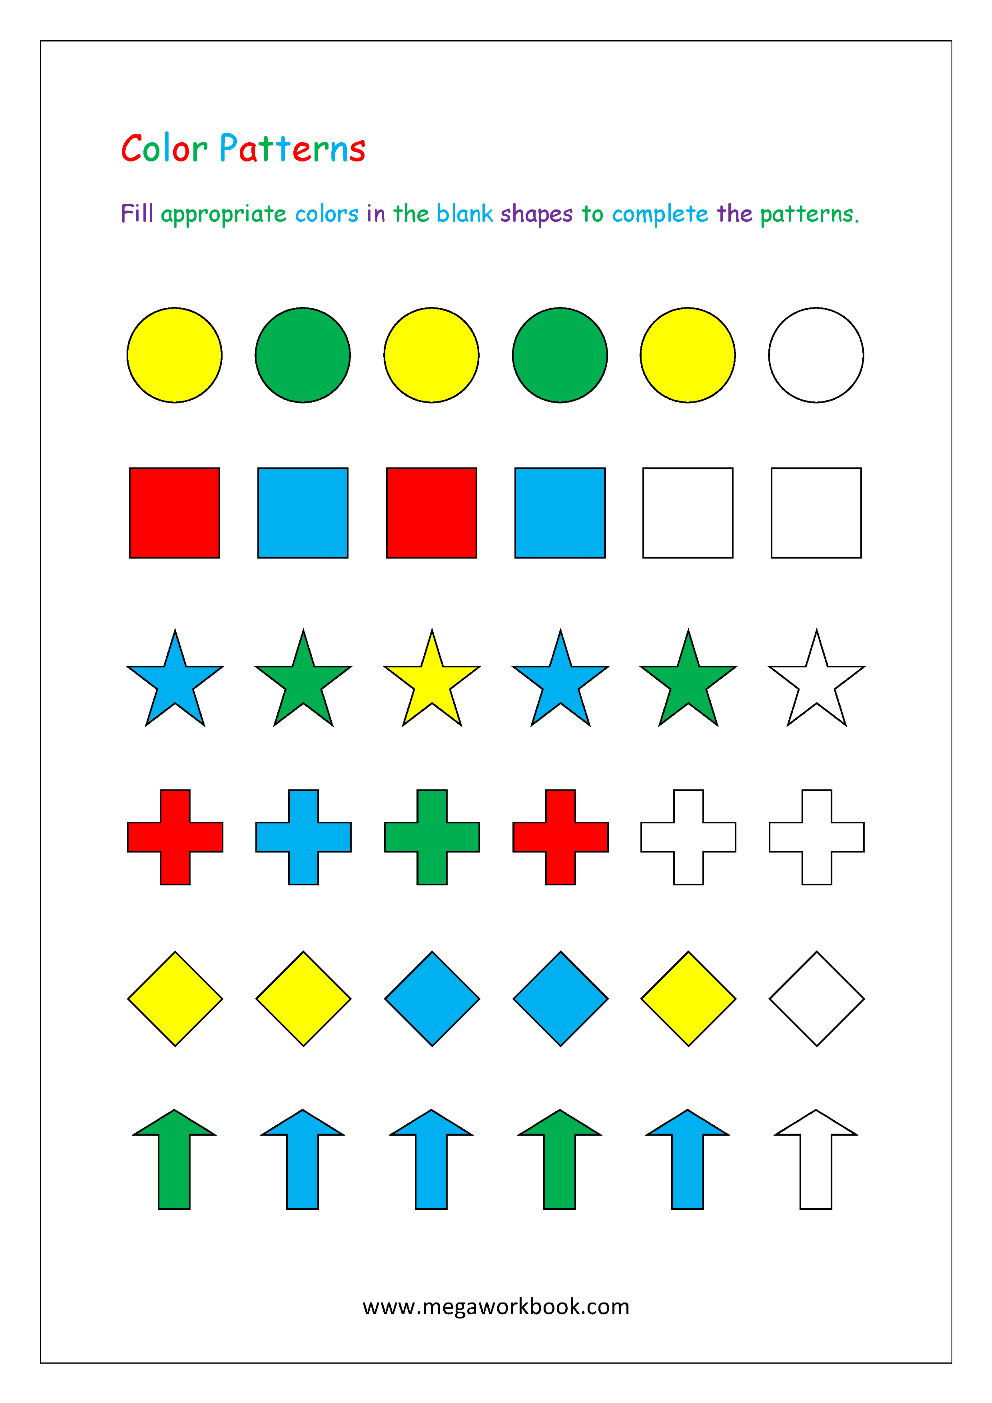 medium resolution of Pattern Worksheets For Kindergarten - Color Patterns - Growing Patterns -  Decreasing Patterns - Repeating Patterns Worksheets - AB